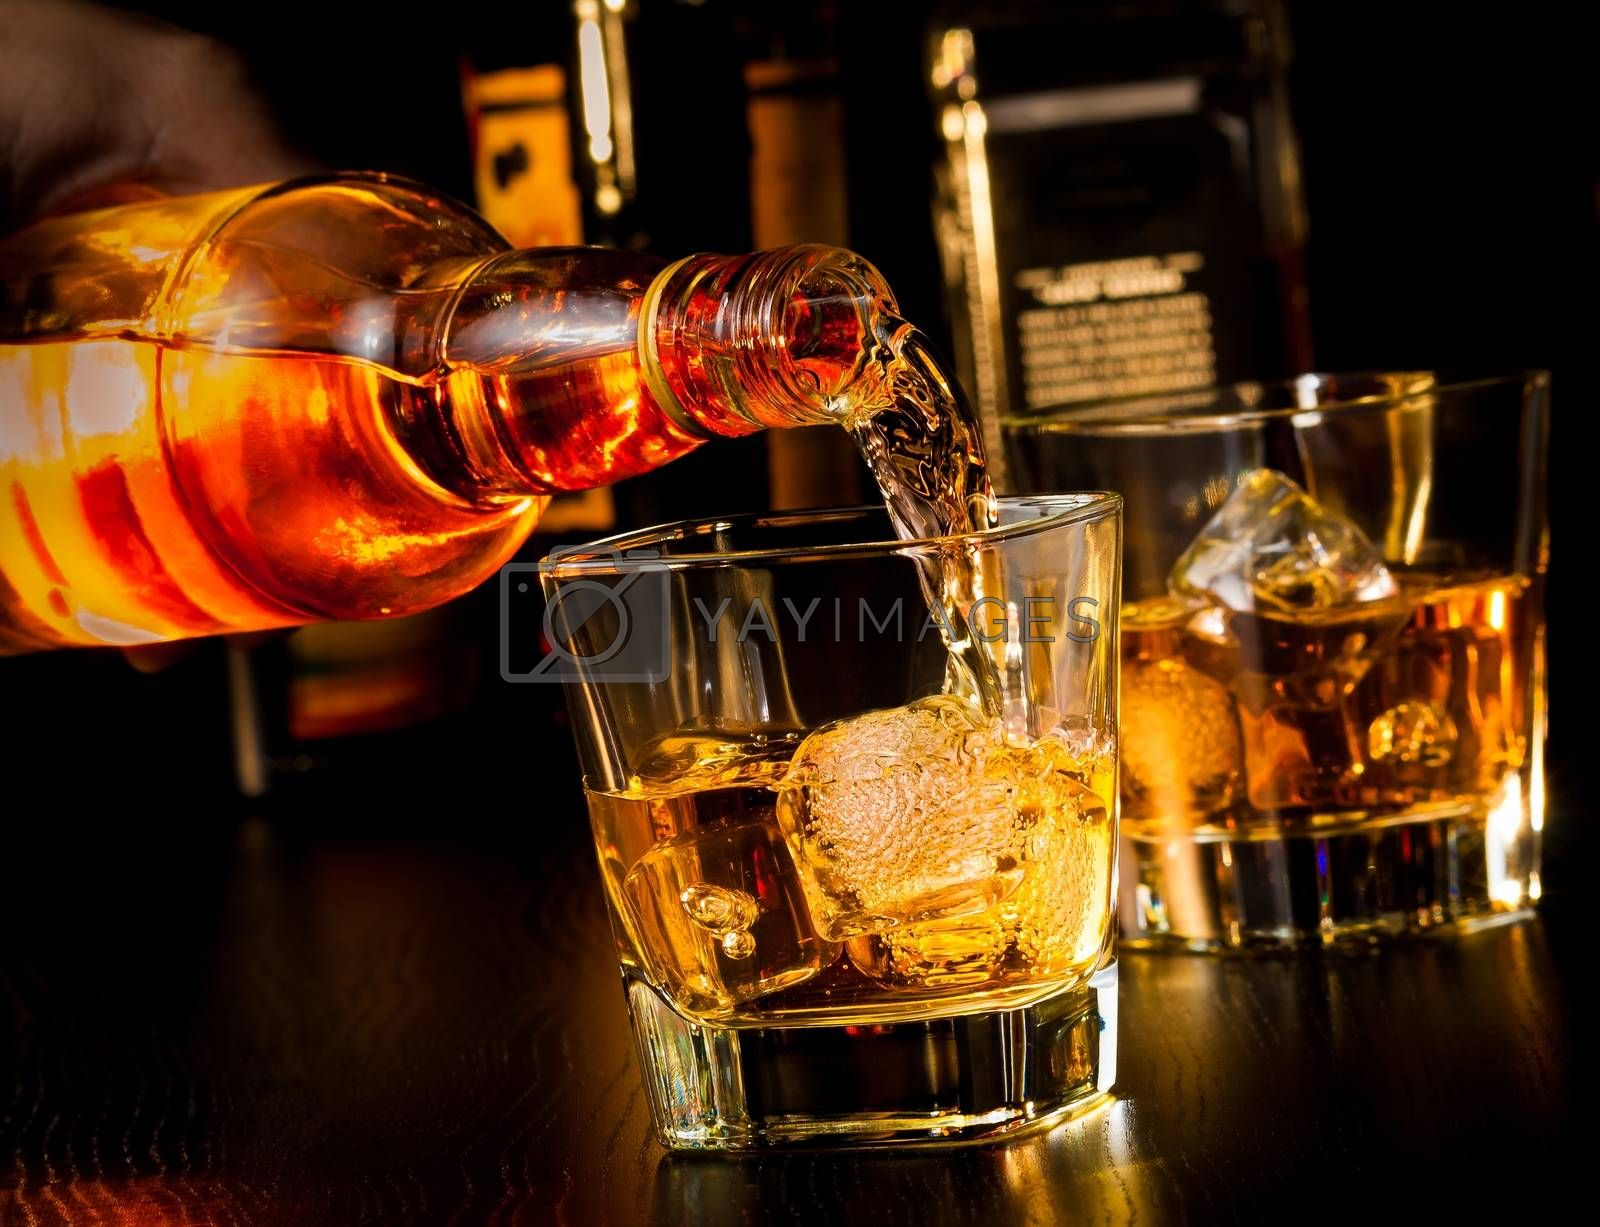 barman pouring whiskey in front of whiskey glass and bottles by donfiore